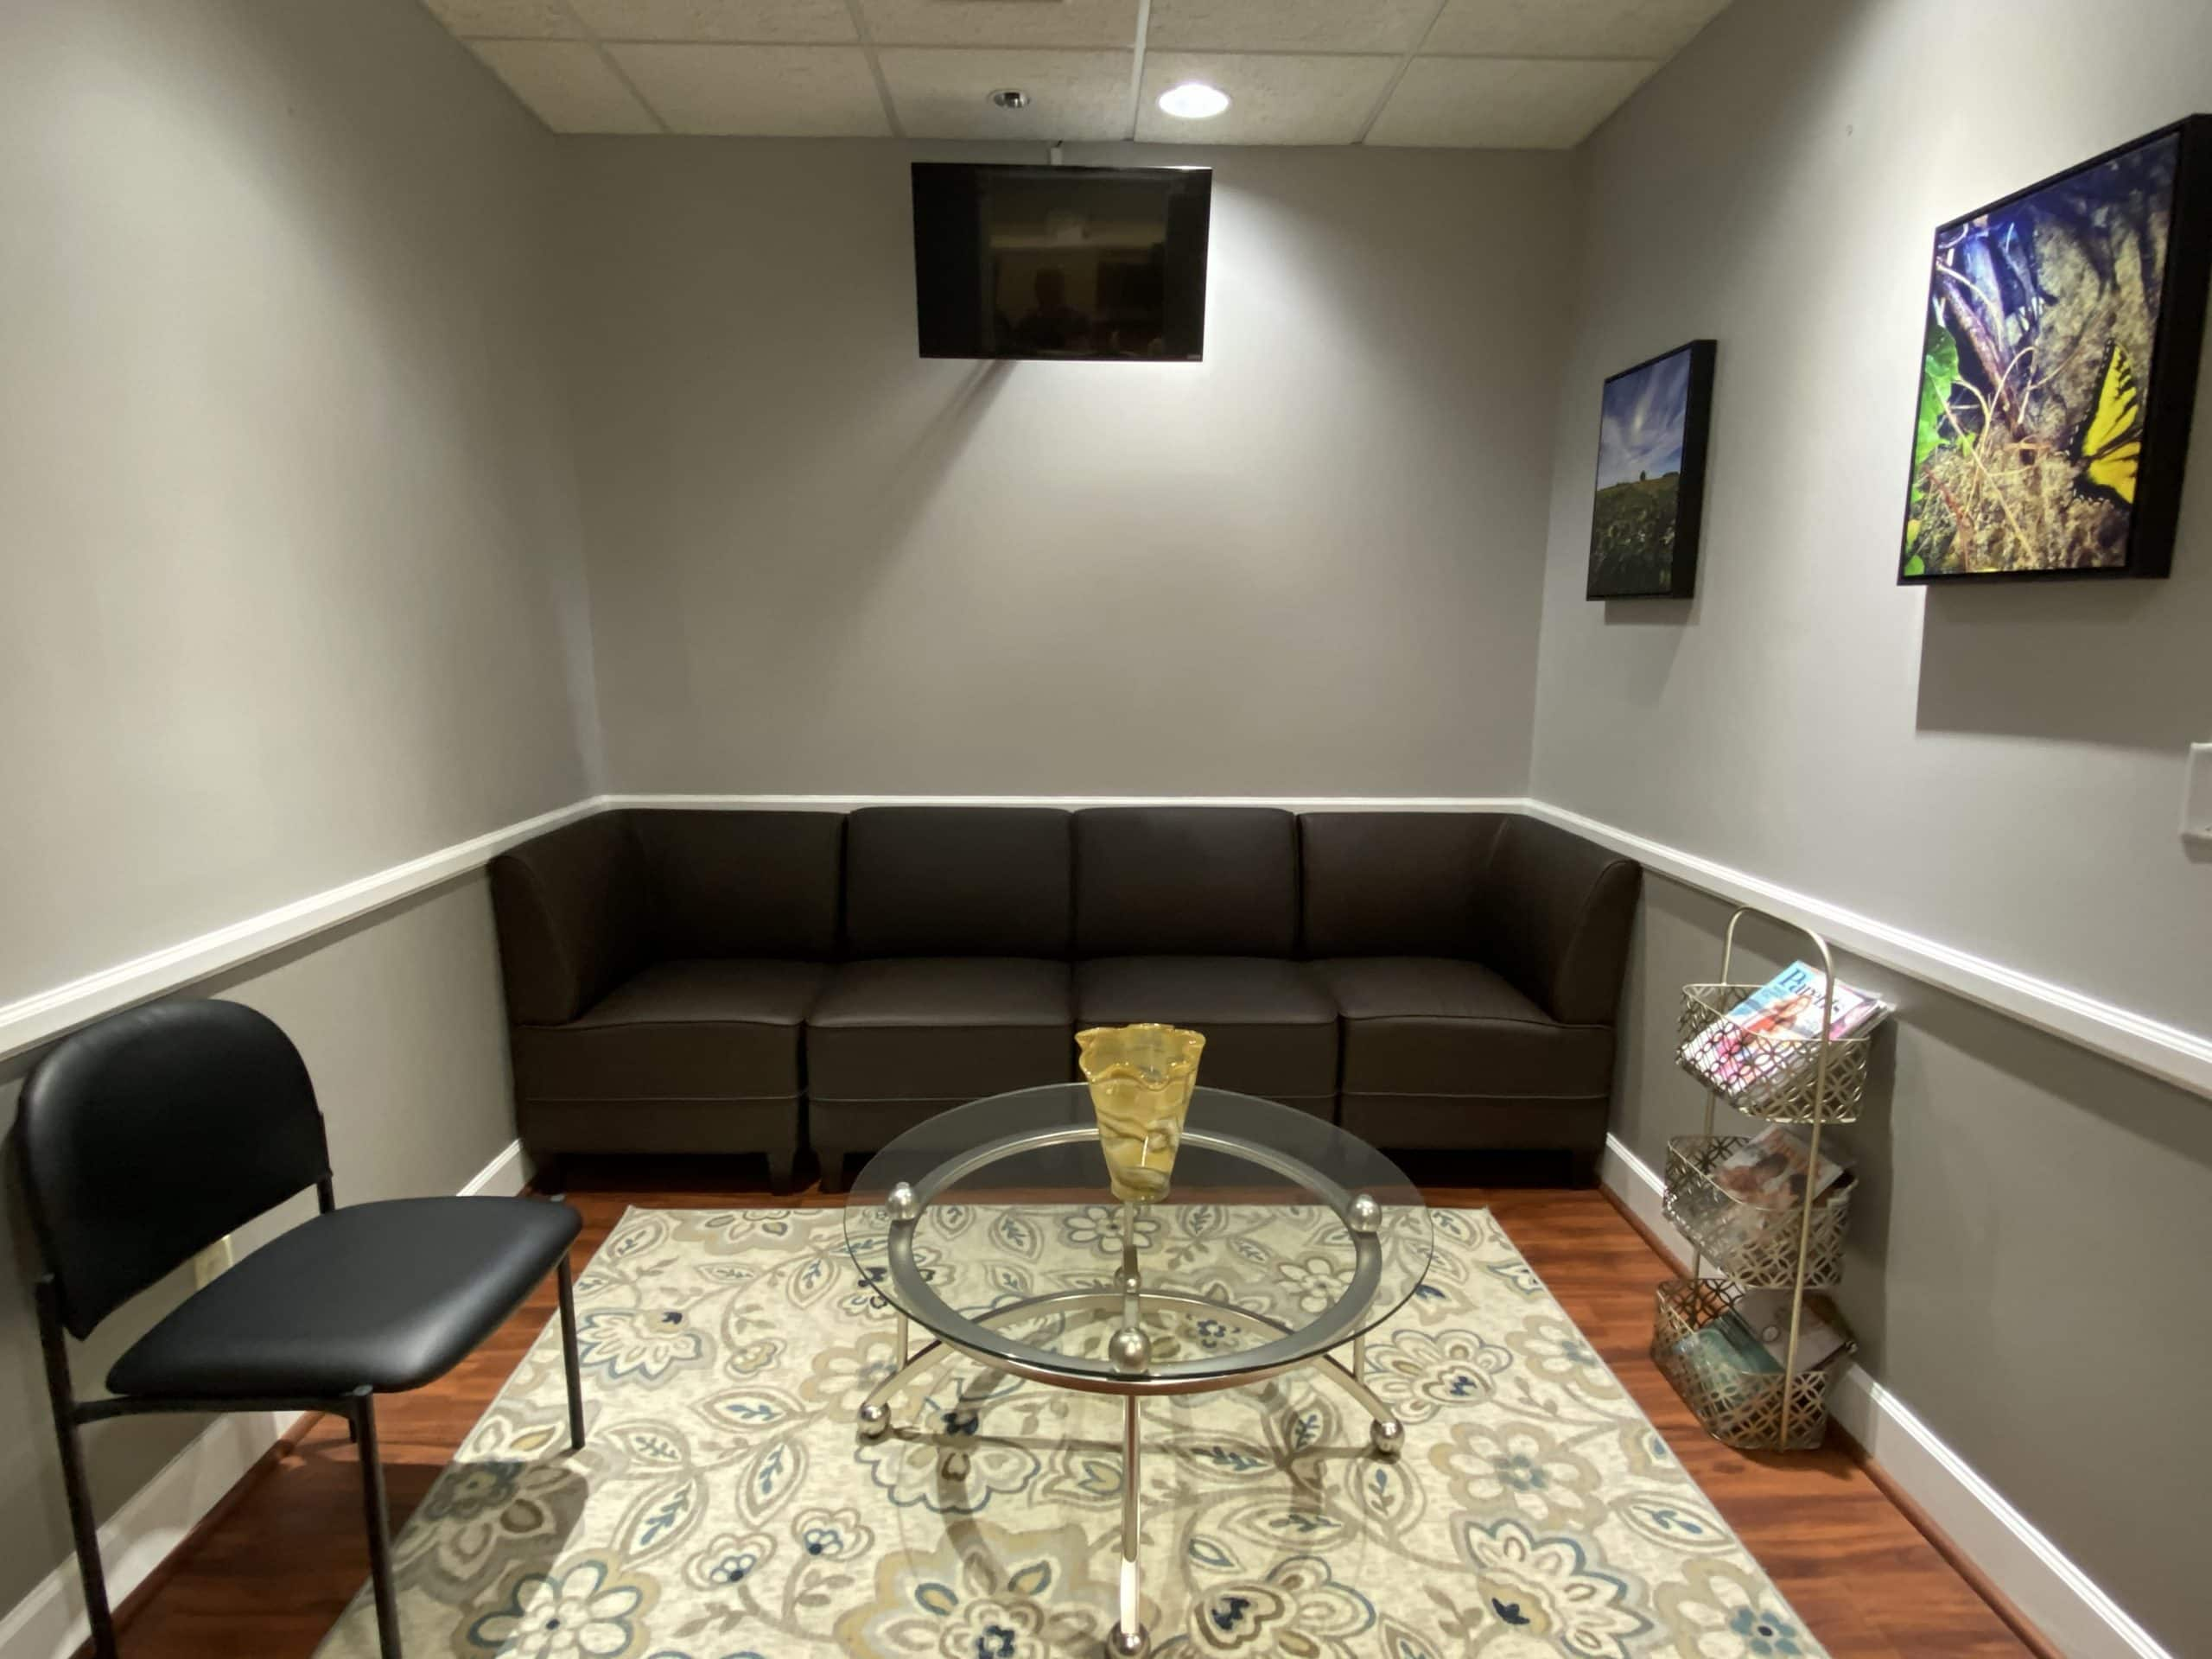 lounge at ketamine clinic in Tampa, FL